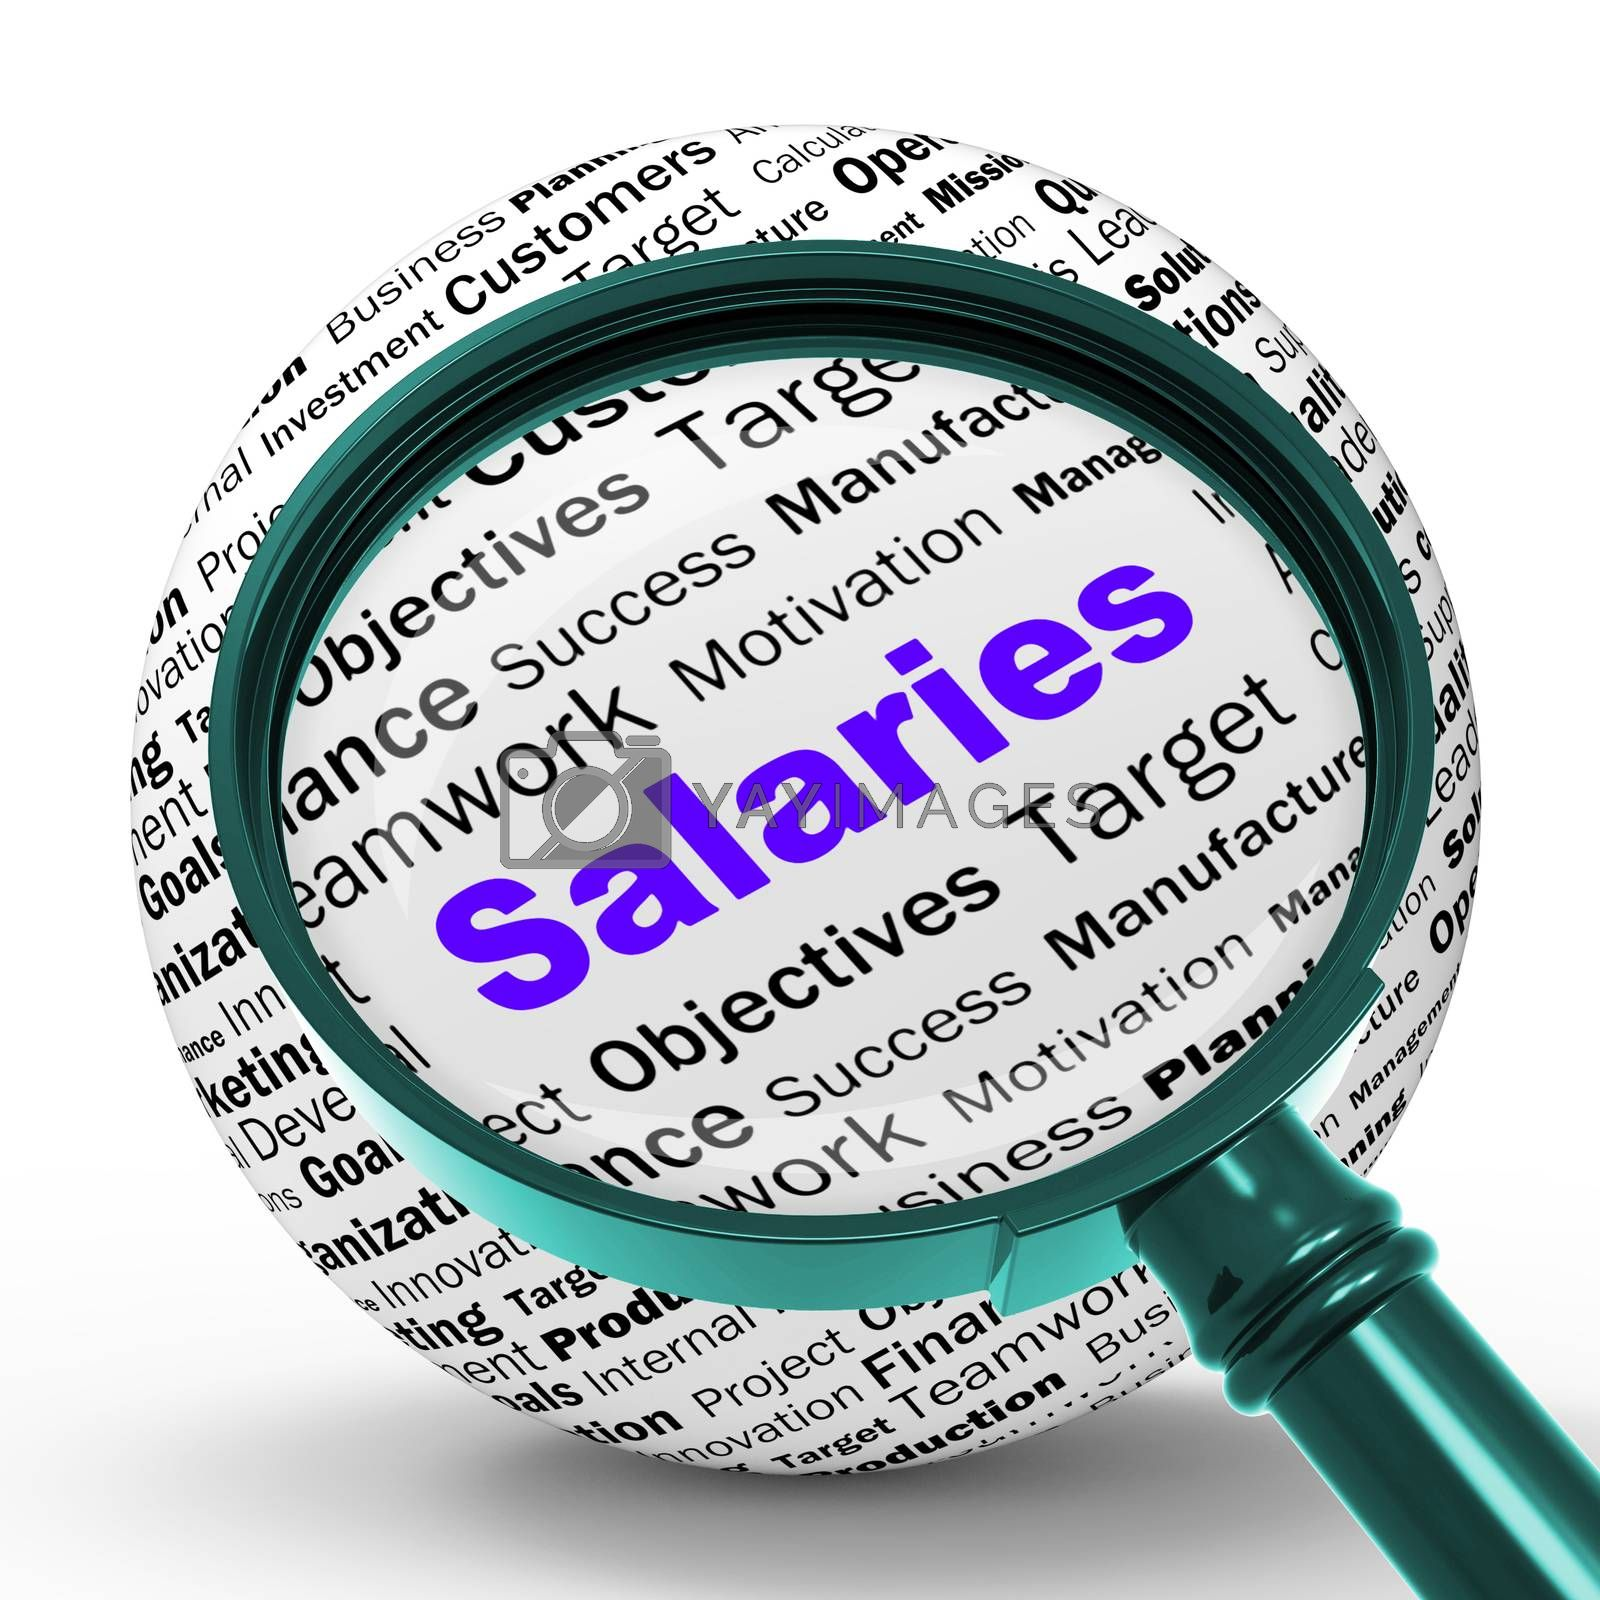 Salaries Magnifier Definition Means Employer Earnings Or Incomes by stuartmiles